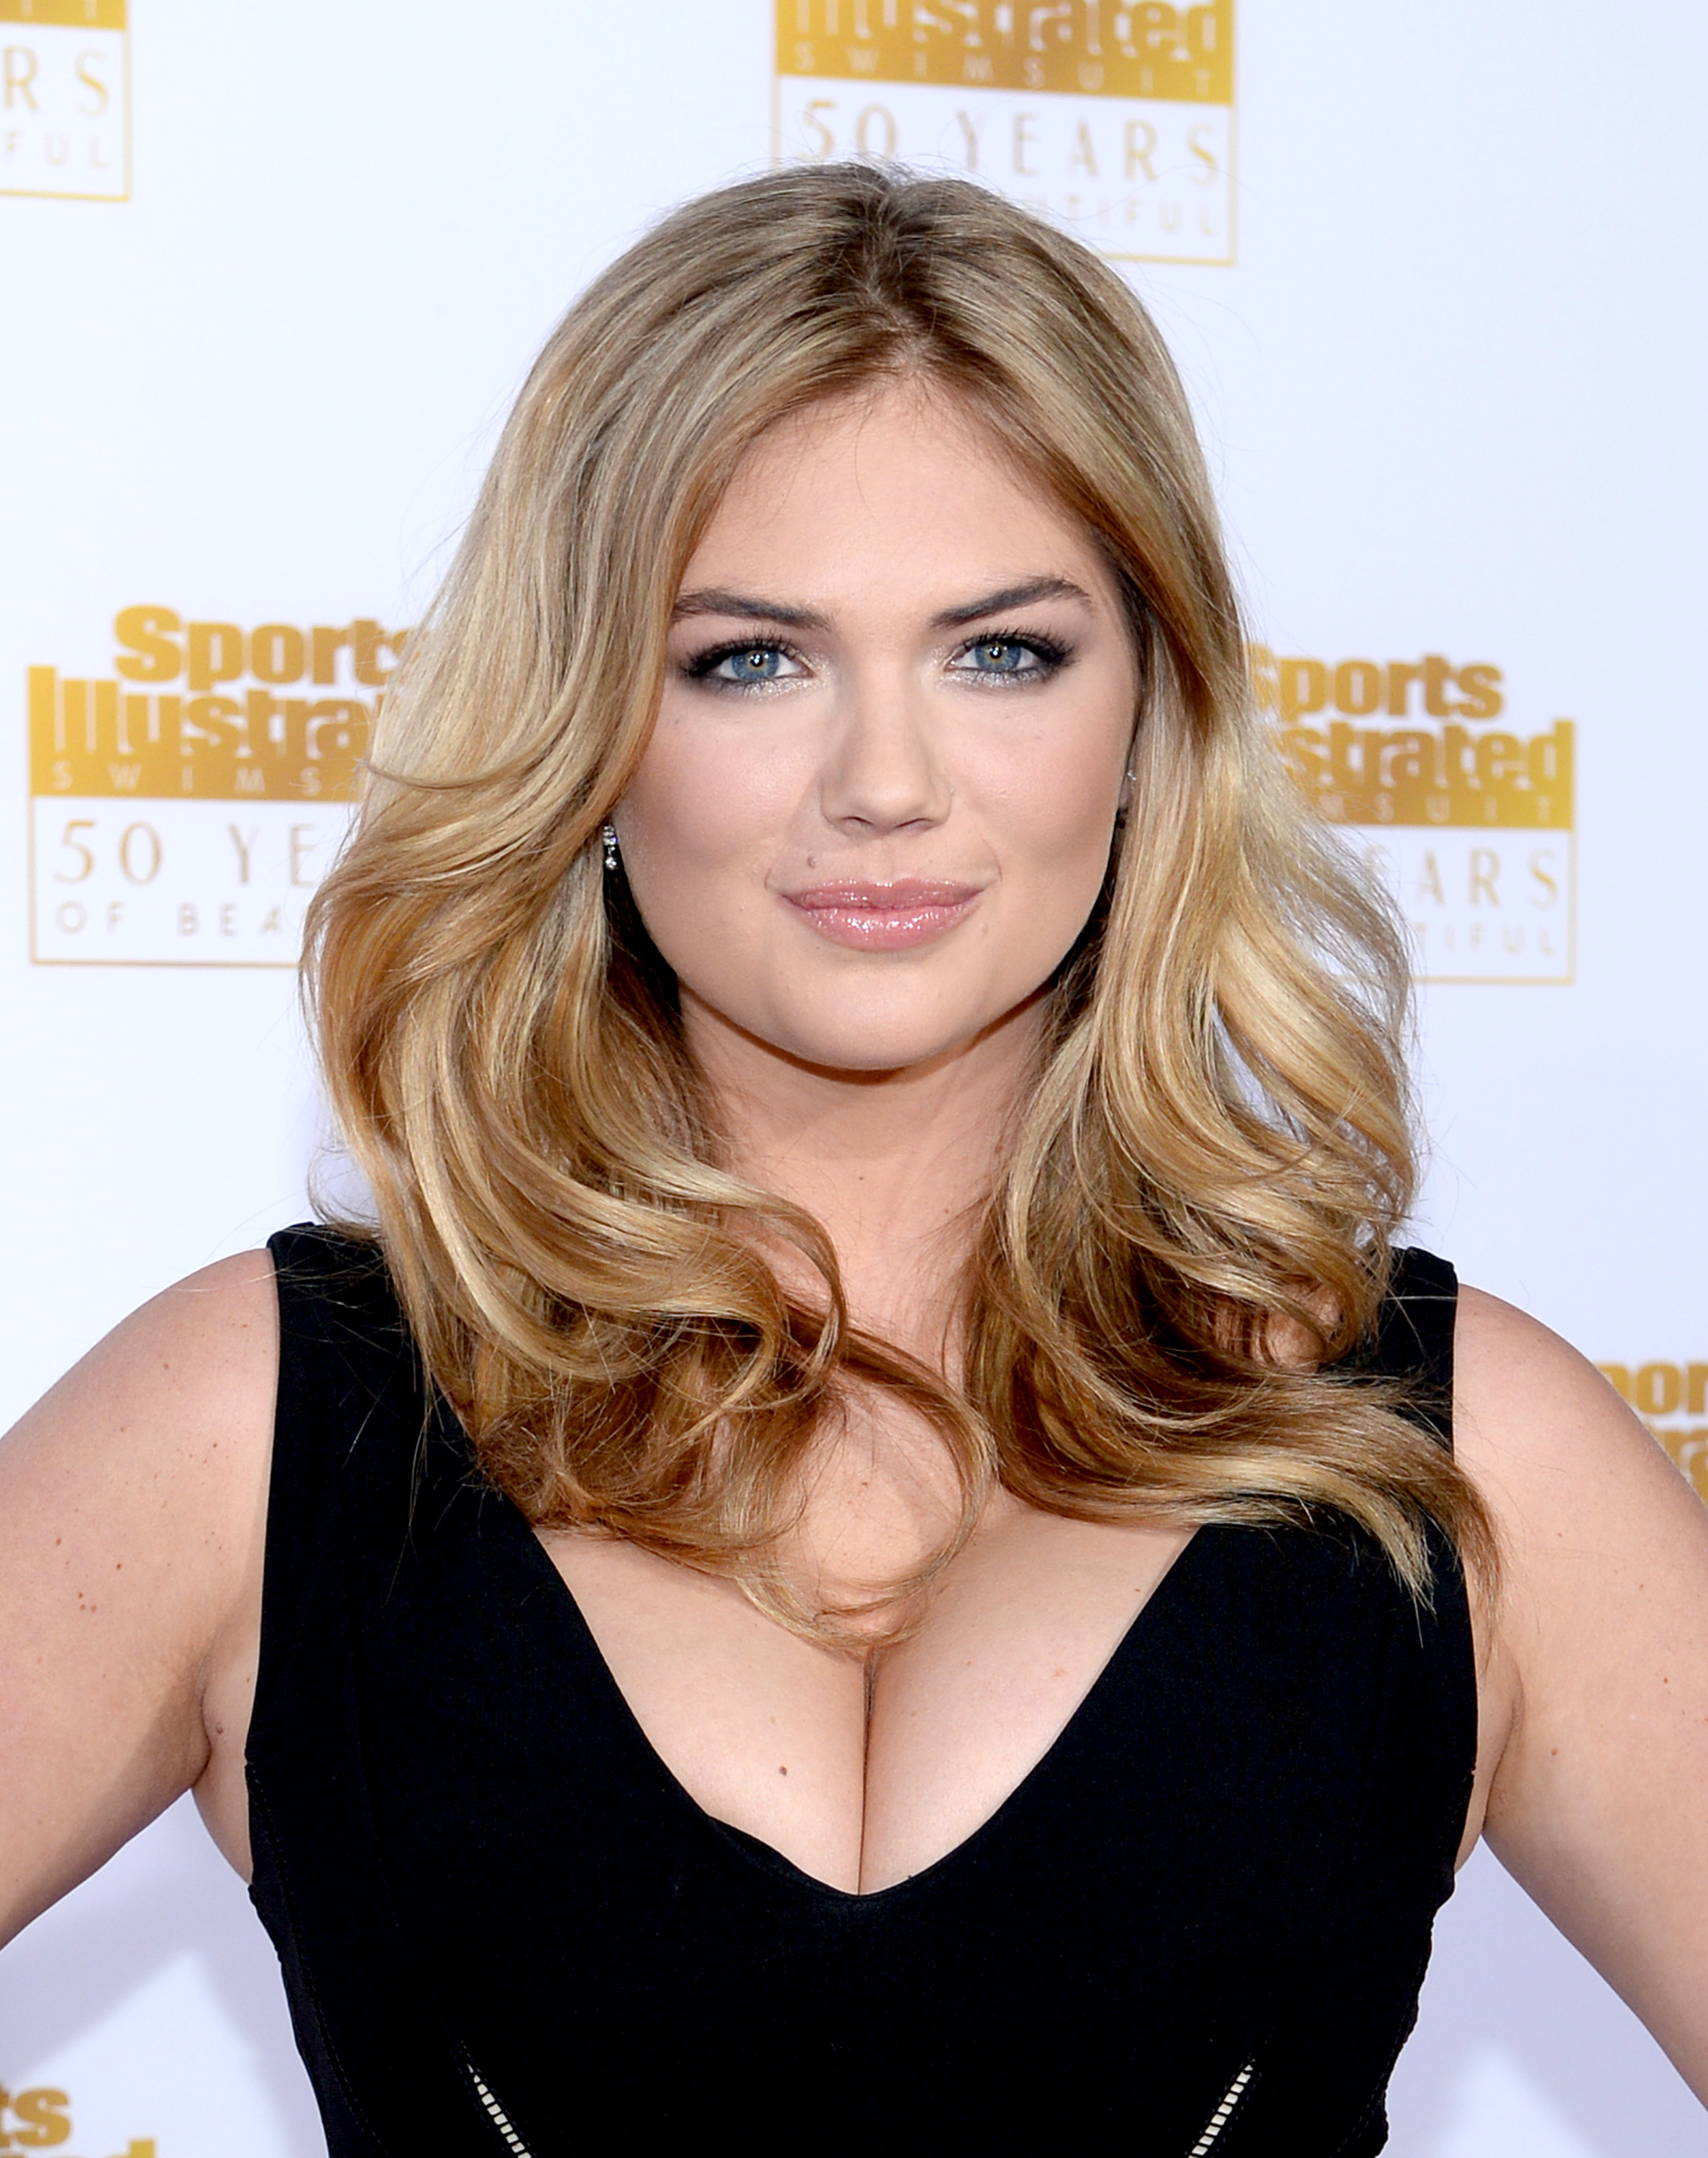 Kate Upton naked (86 photos), Sexy, Hot, Feet, braless 2015